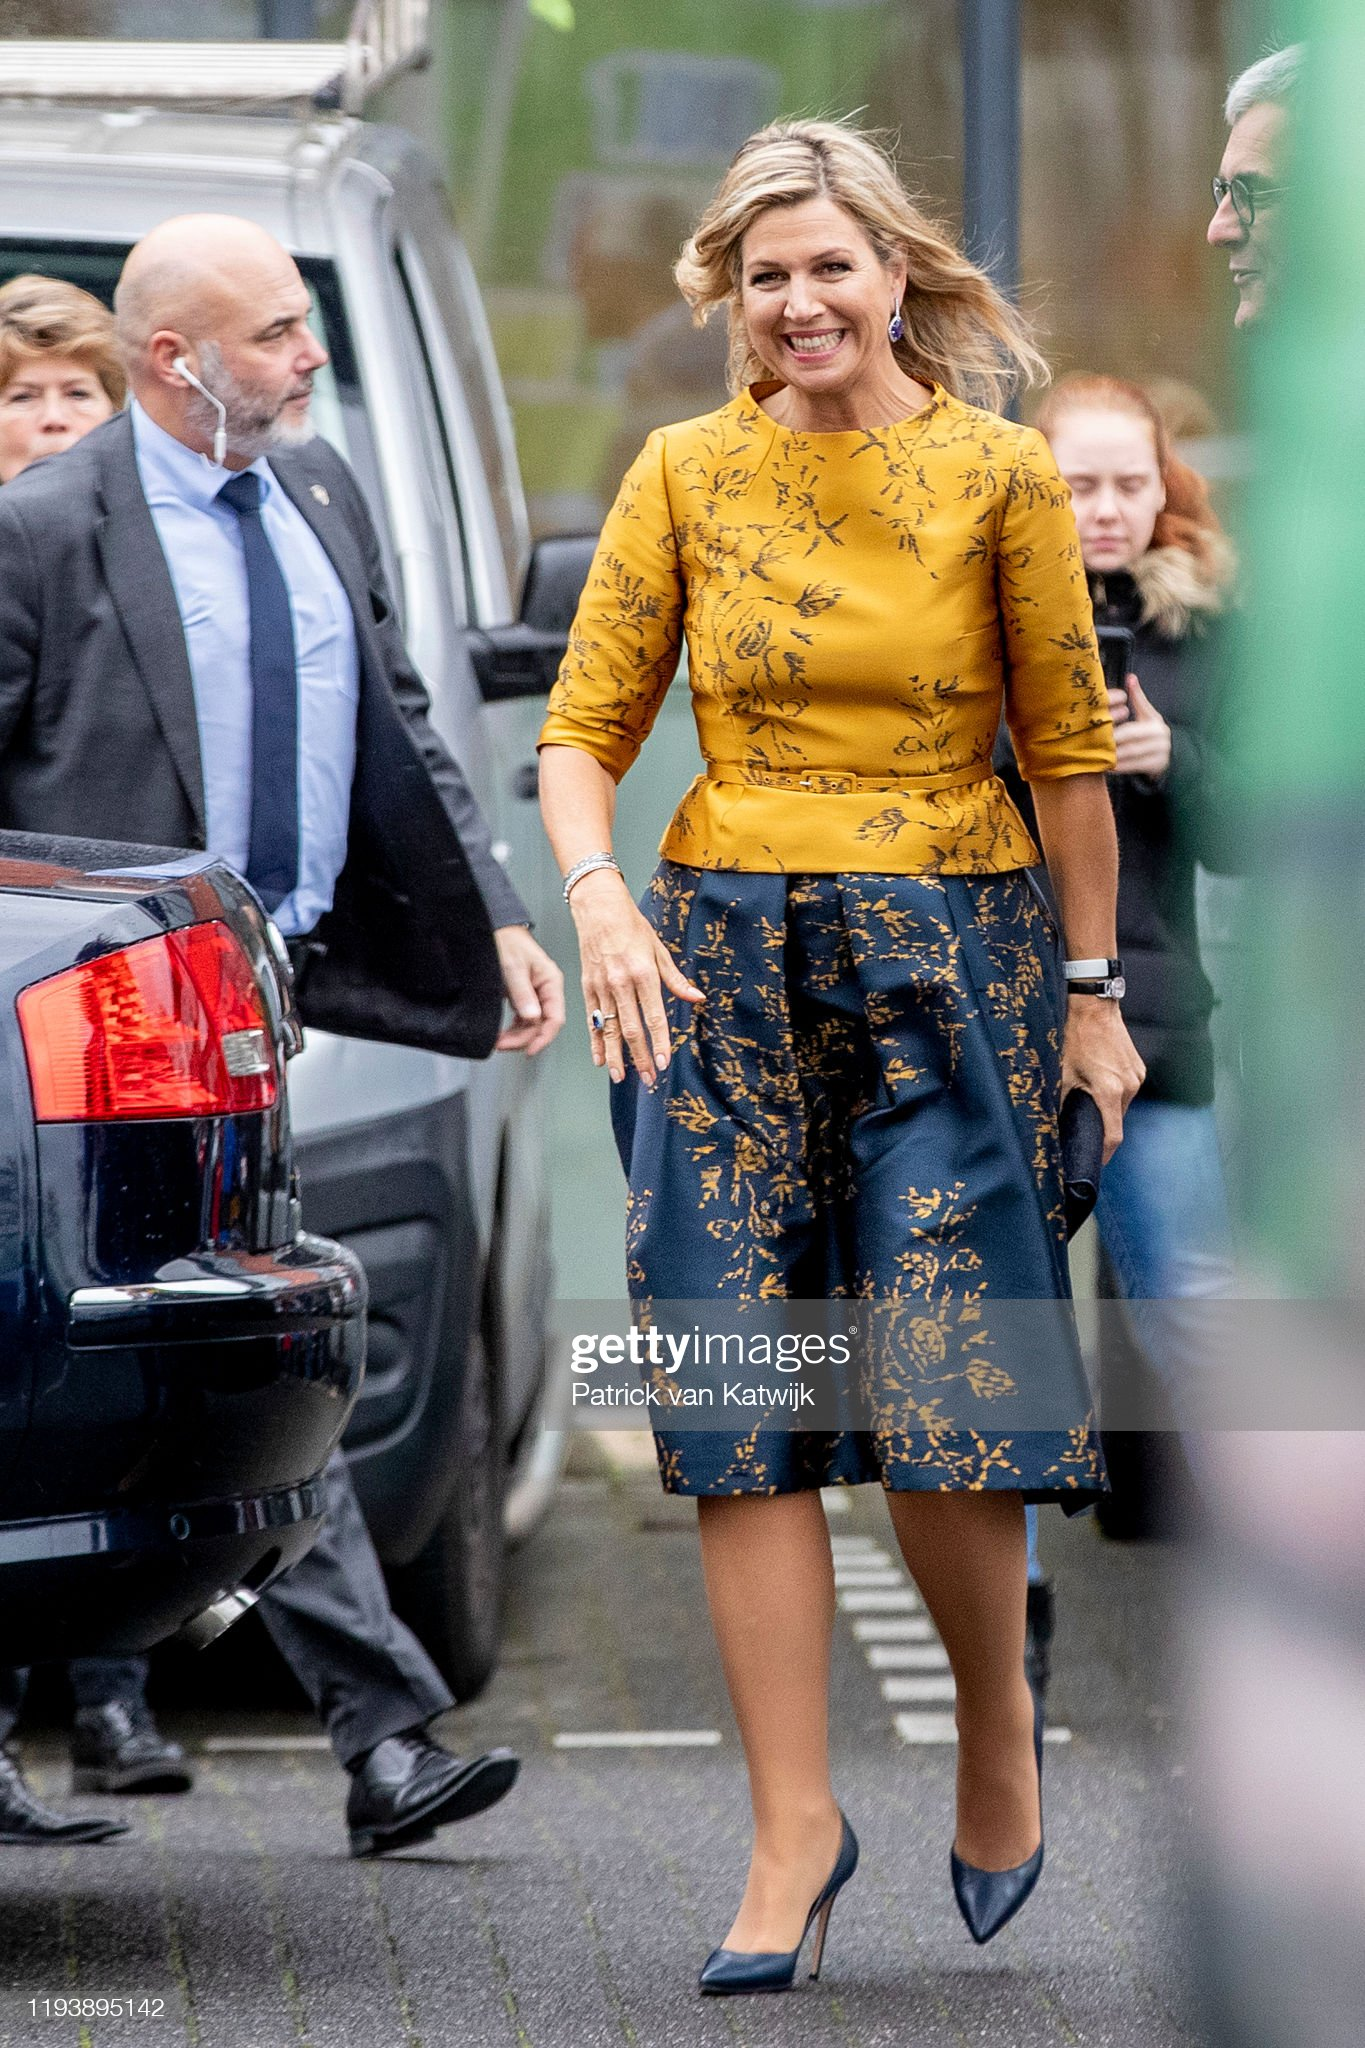 https://media.gettyimages.com/photos/queen-maxima-of-the-netherlands-during-a-visit-to-the-scouting-cubs-picture-id1193895142?s=2048x2048